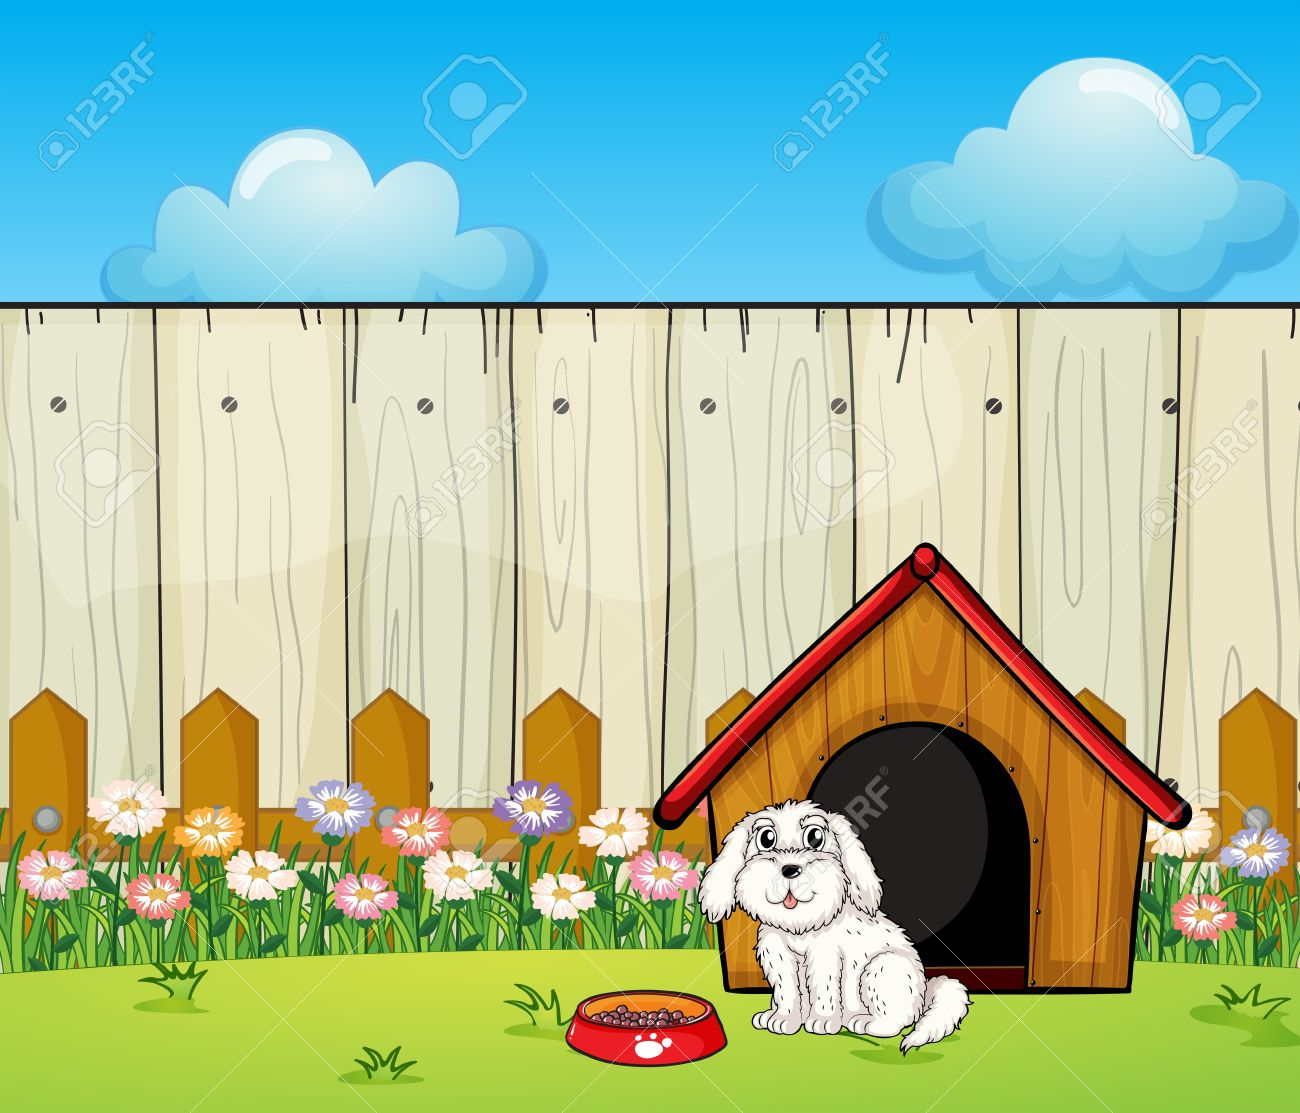 Illustration of a dog and the dog house inside the fence Stock Vector - 17918331